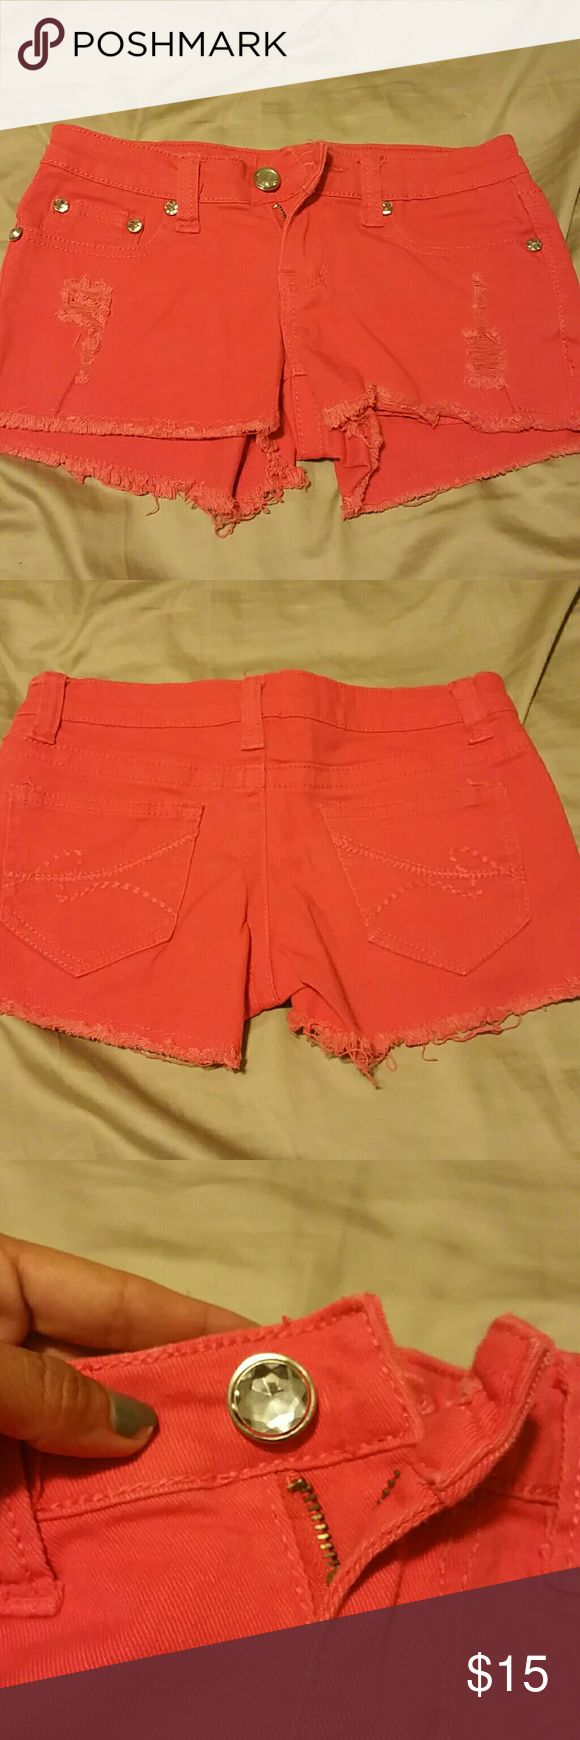 Coral Jean shorts Coral in color with rhinestone embellishments and some ripped up distress on front. Rue 21 Shorts Jean Shorts